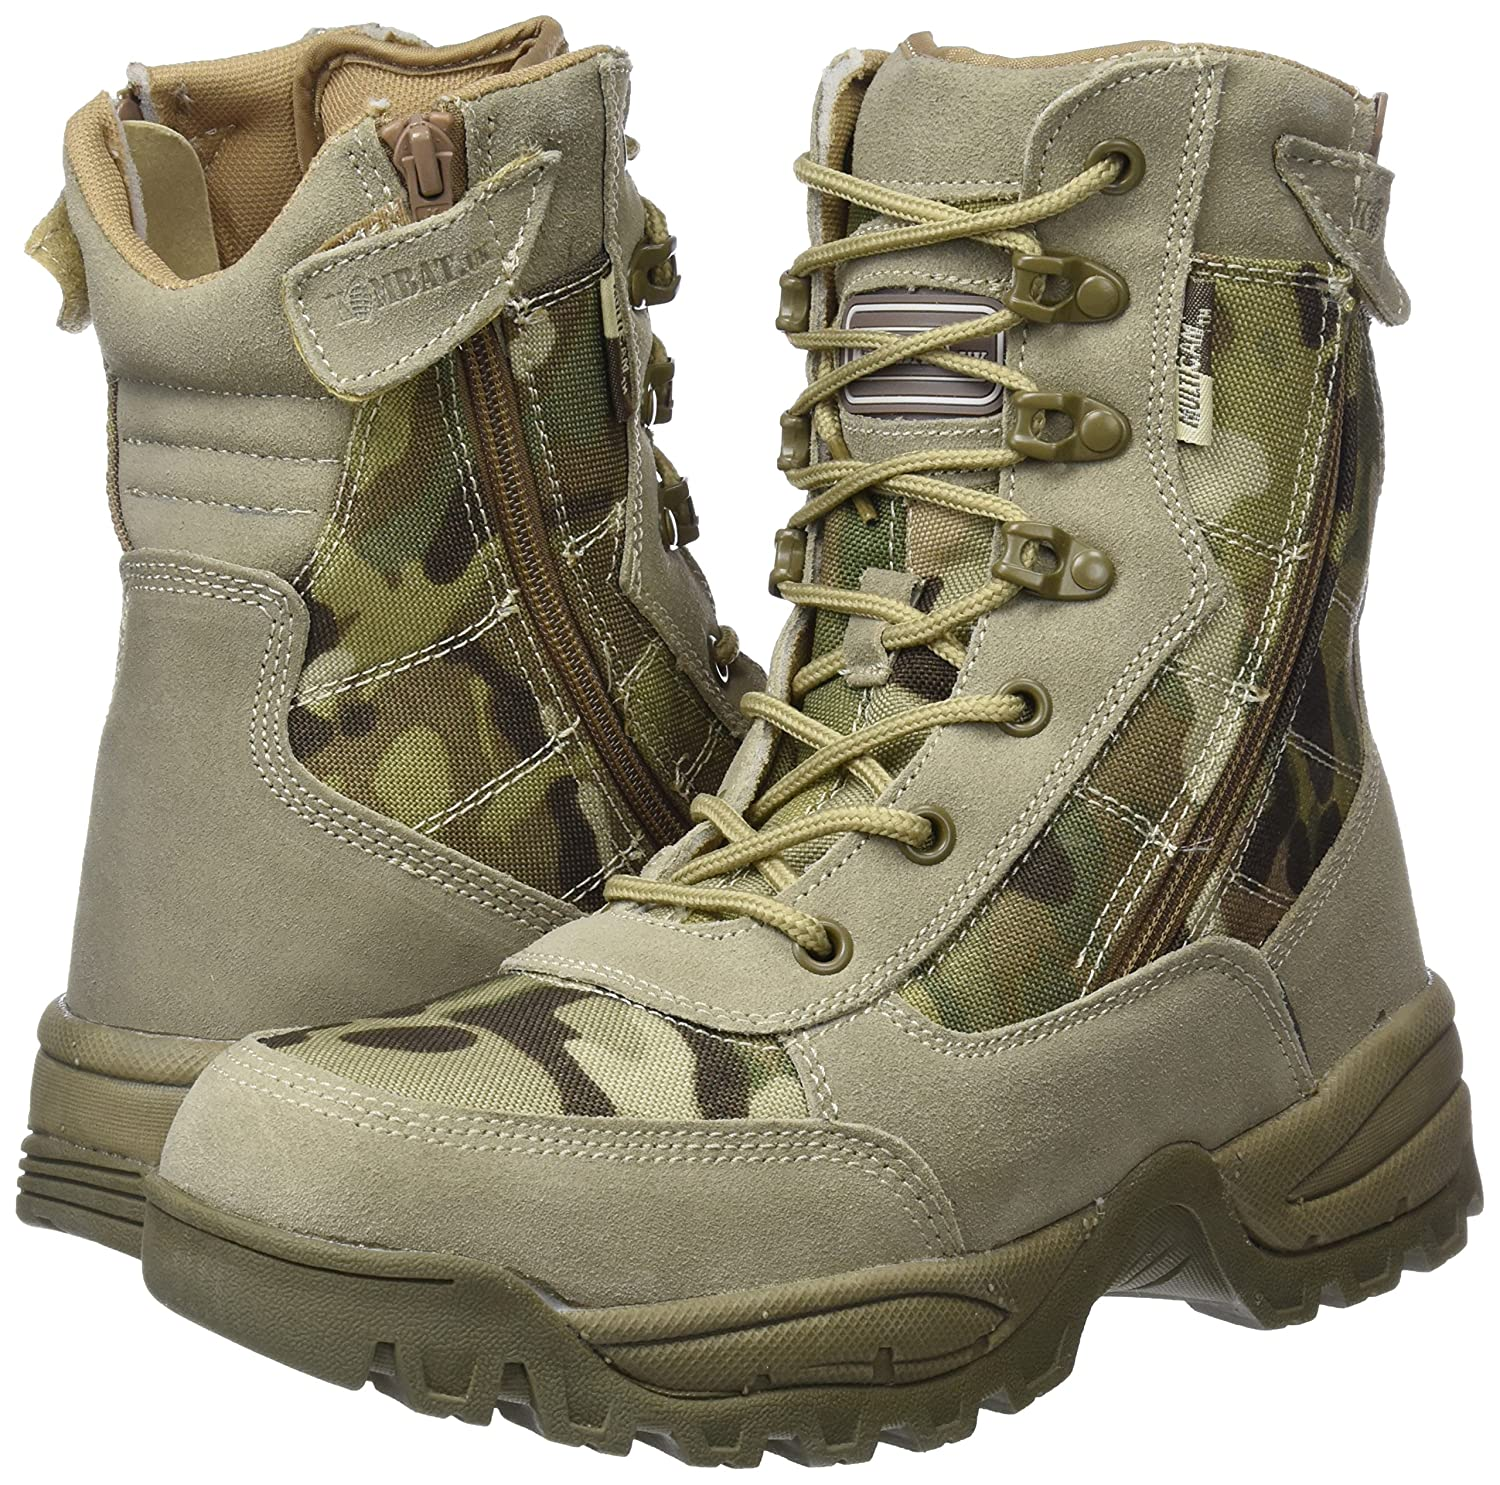 SALES AND OFFERS ON SELECTED COMBAT BOOTS